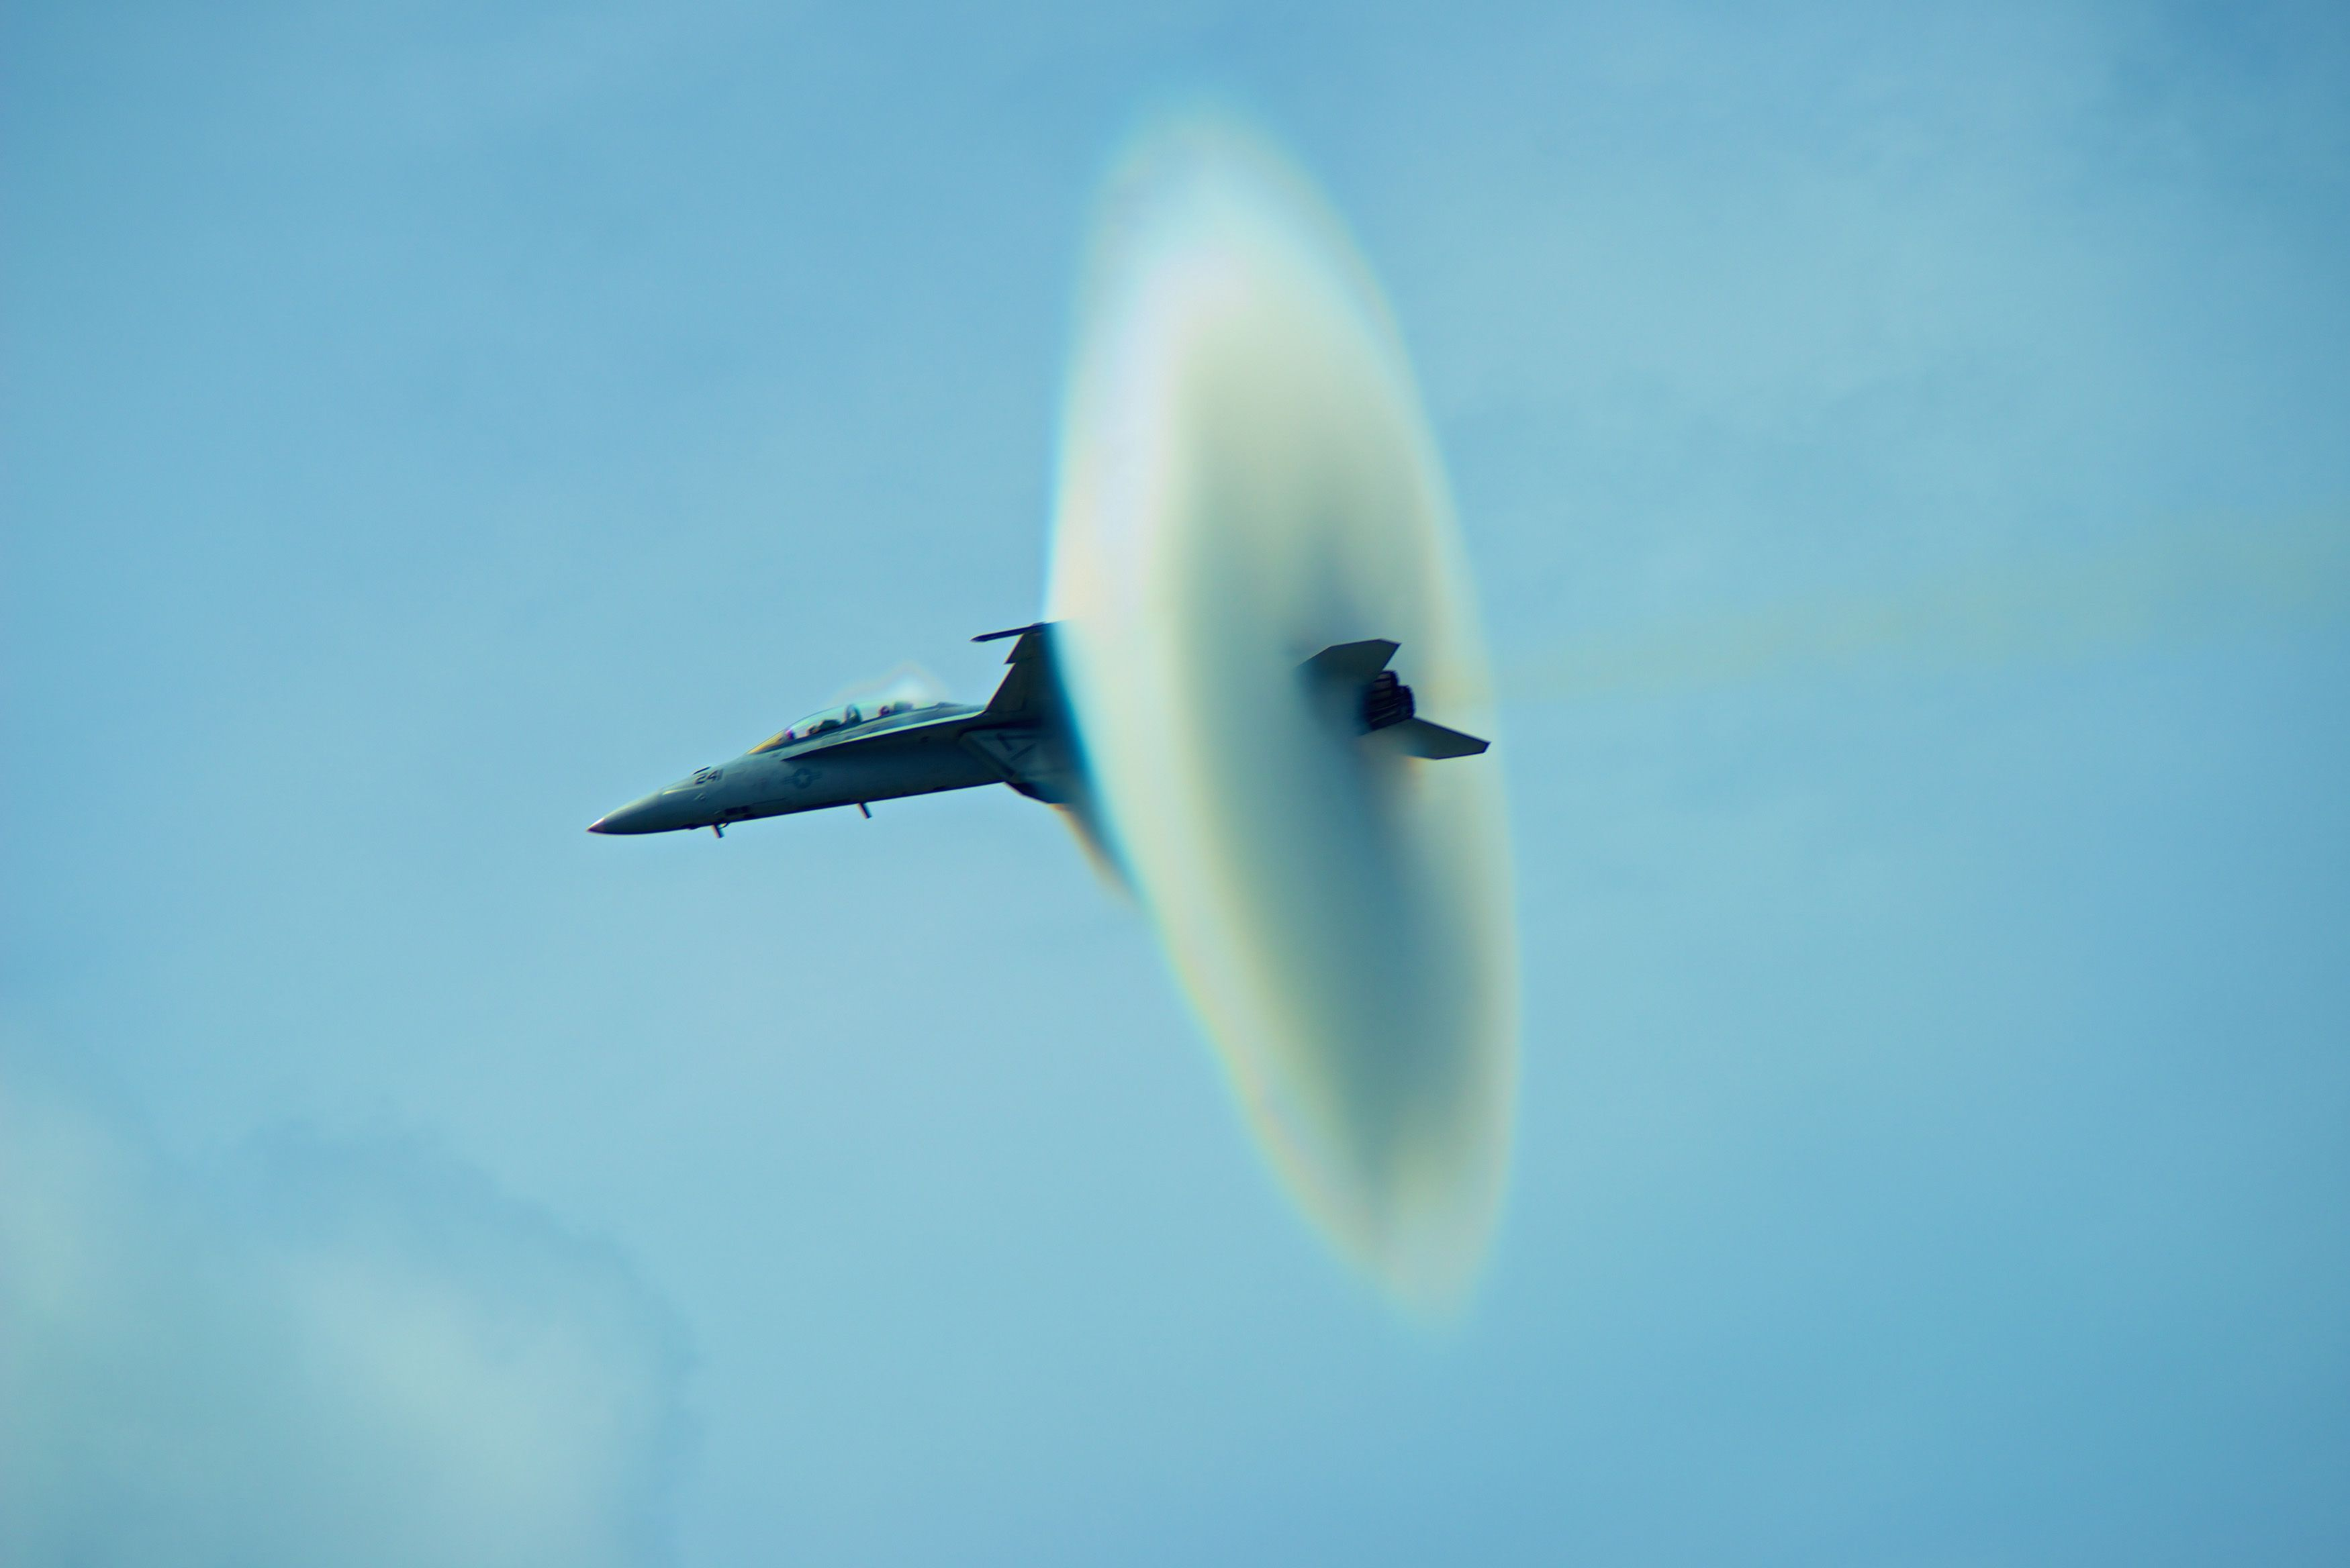 Jet breaking sound barrier looks like this Speed of